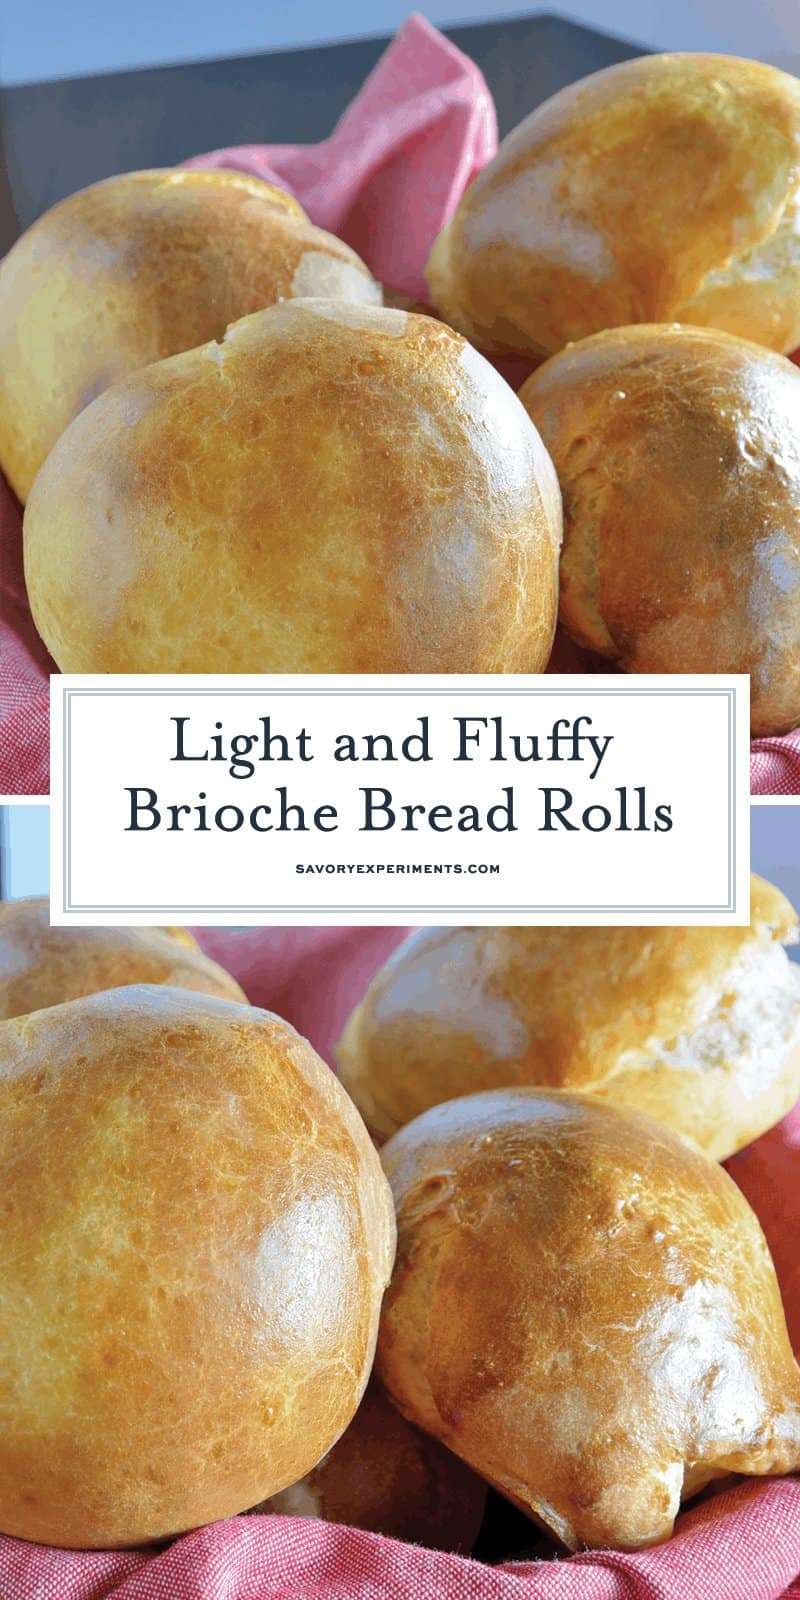 This Brioche Bread Rolls recipe shows you that making bread at home isn't as hard as you think! Step-by-step instructions on how to make brioche right here! #briocheroll #whatisbrioche #Howtomakebrioche www.savoryexperiments.com